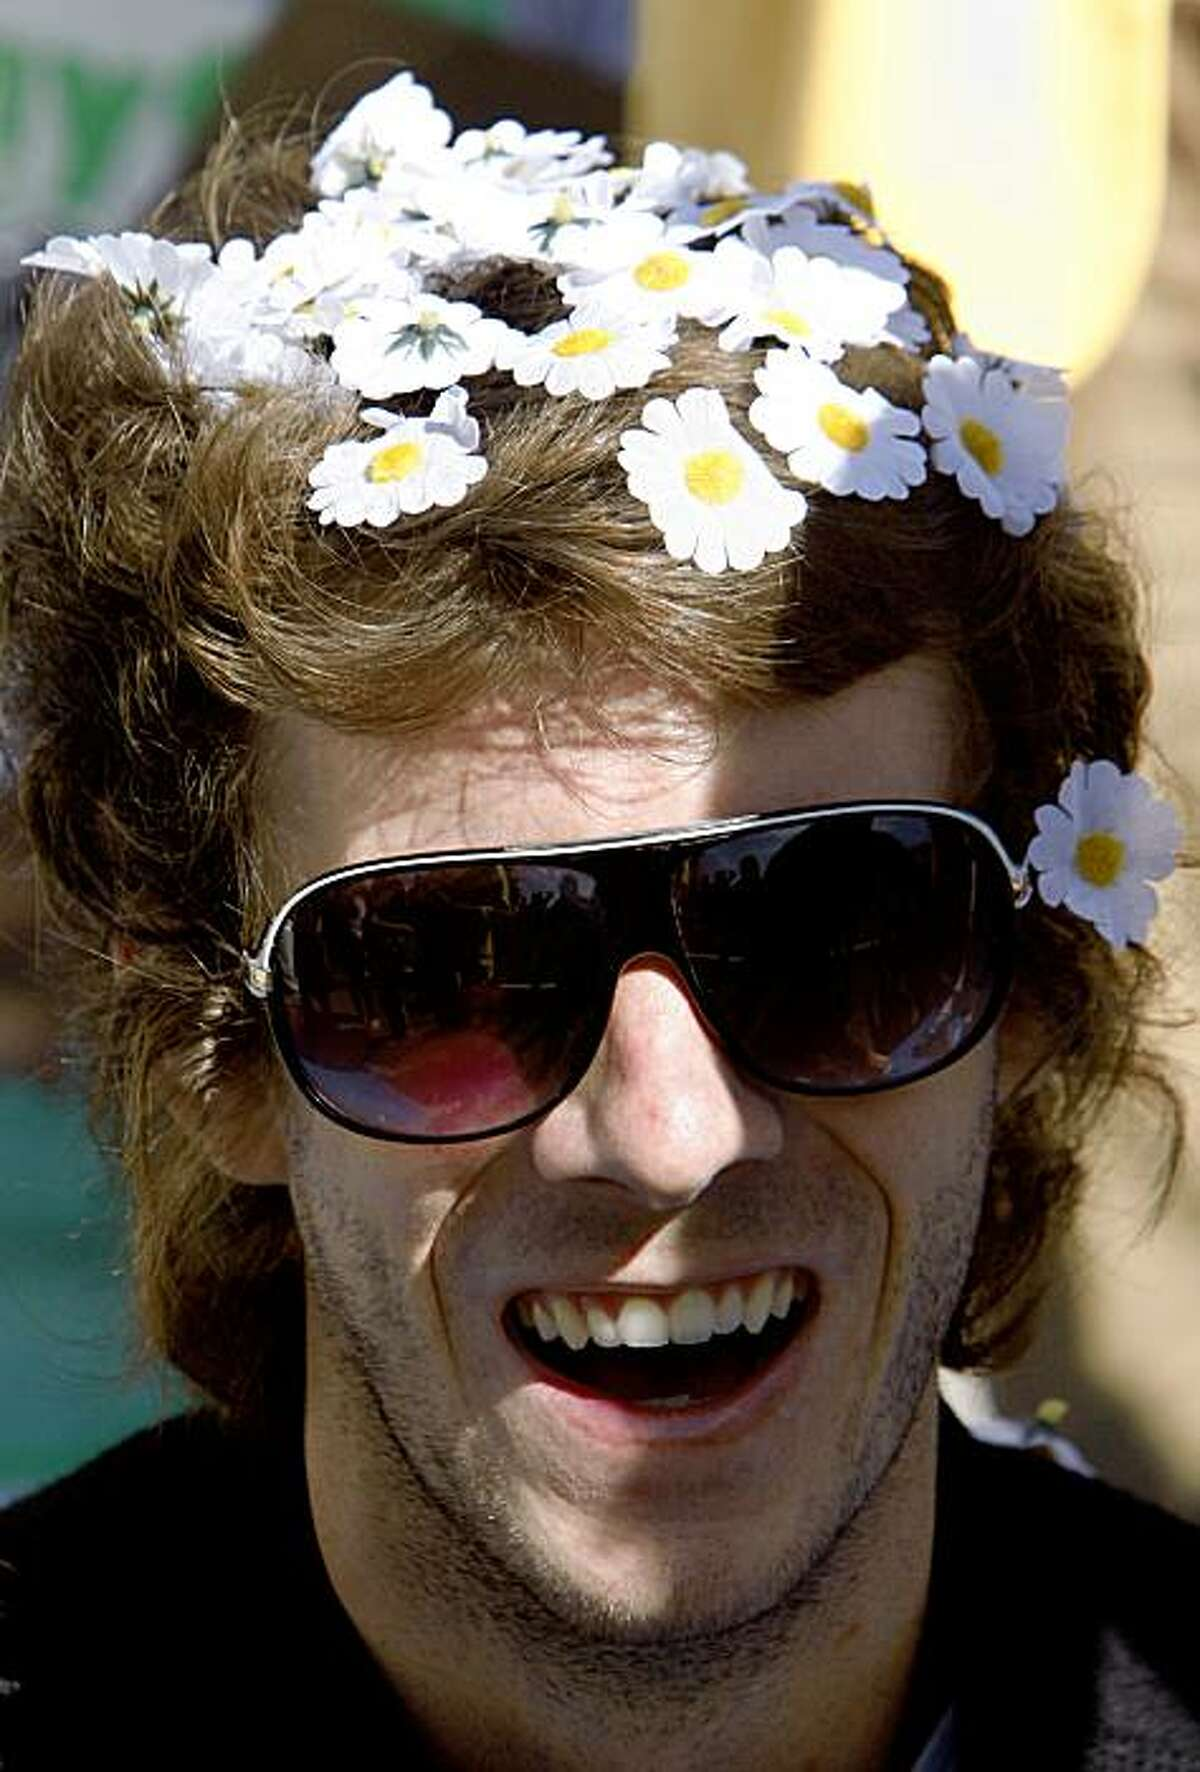 Kyle Shafer took part in a game to see who could have the most flowers in one's hair at once at the Treasure Island Music Festival on Saturday.